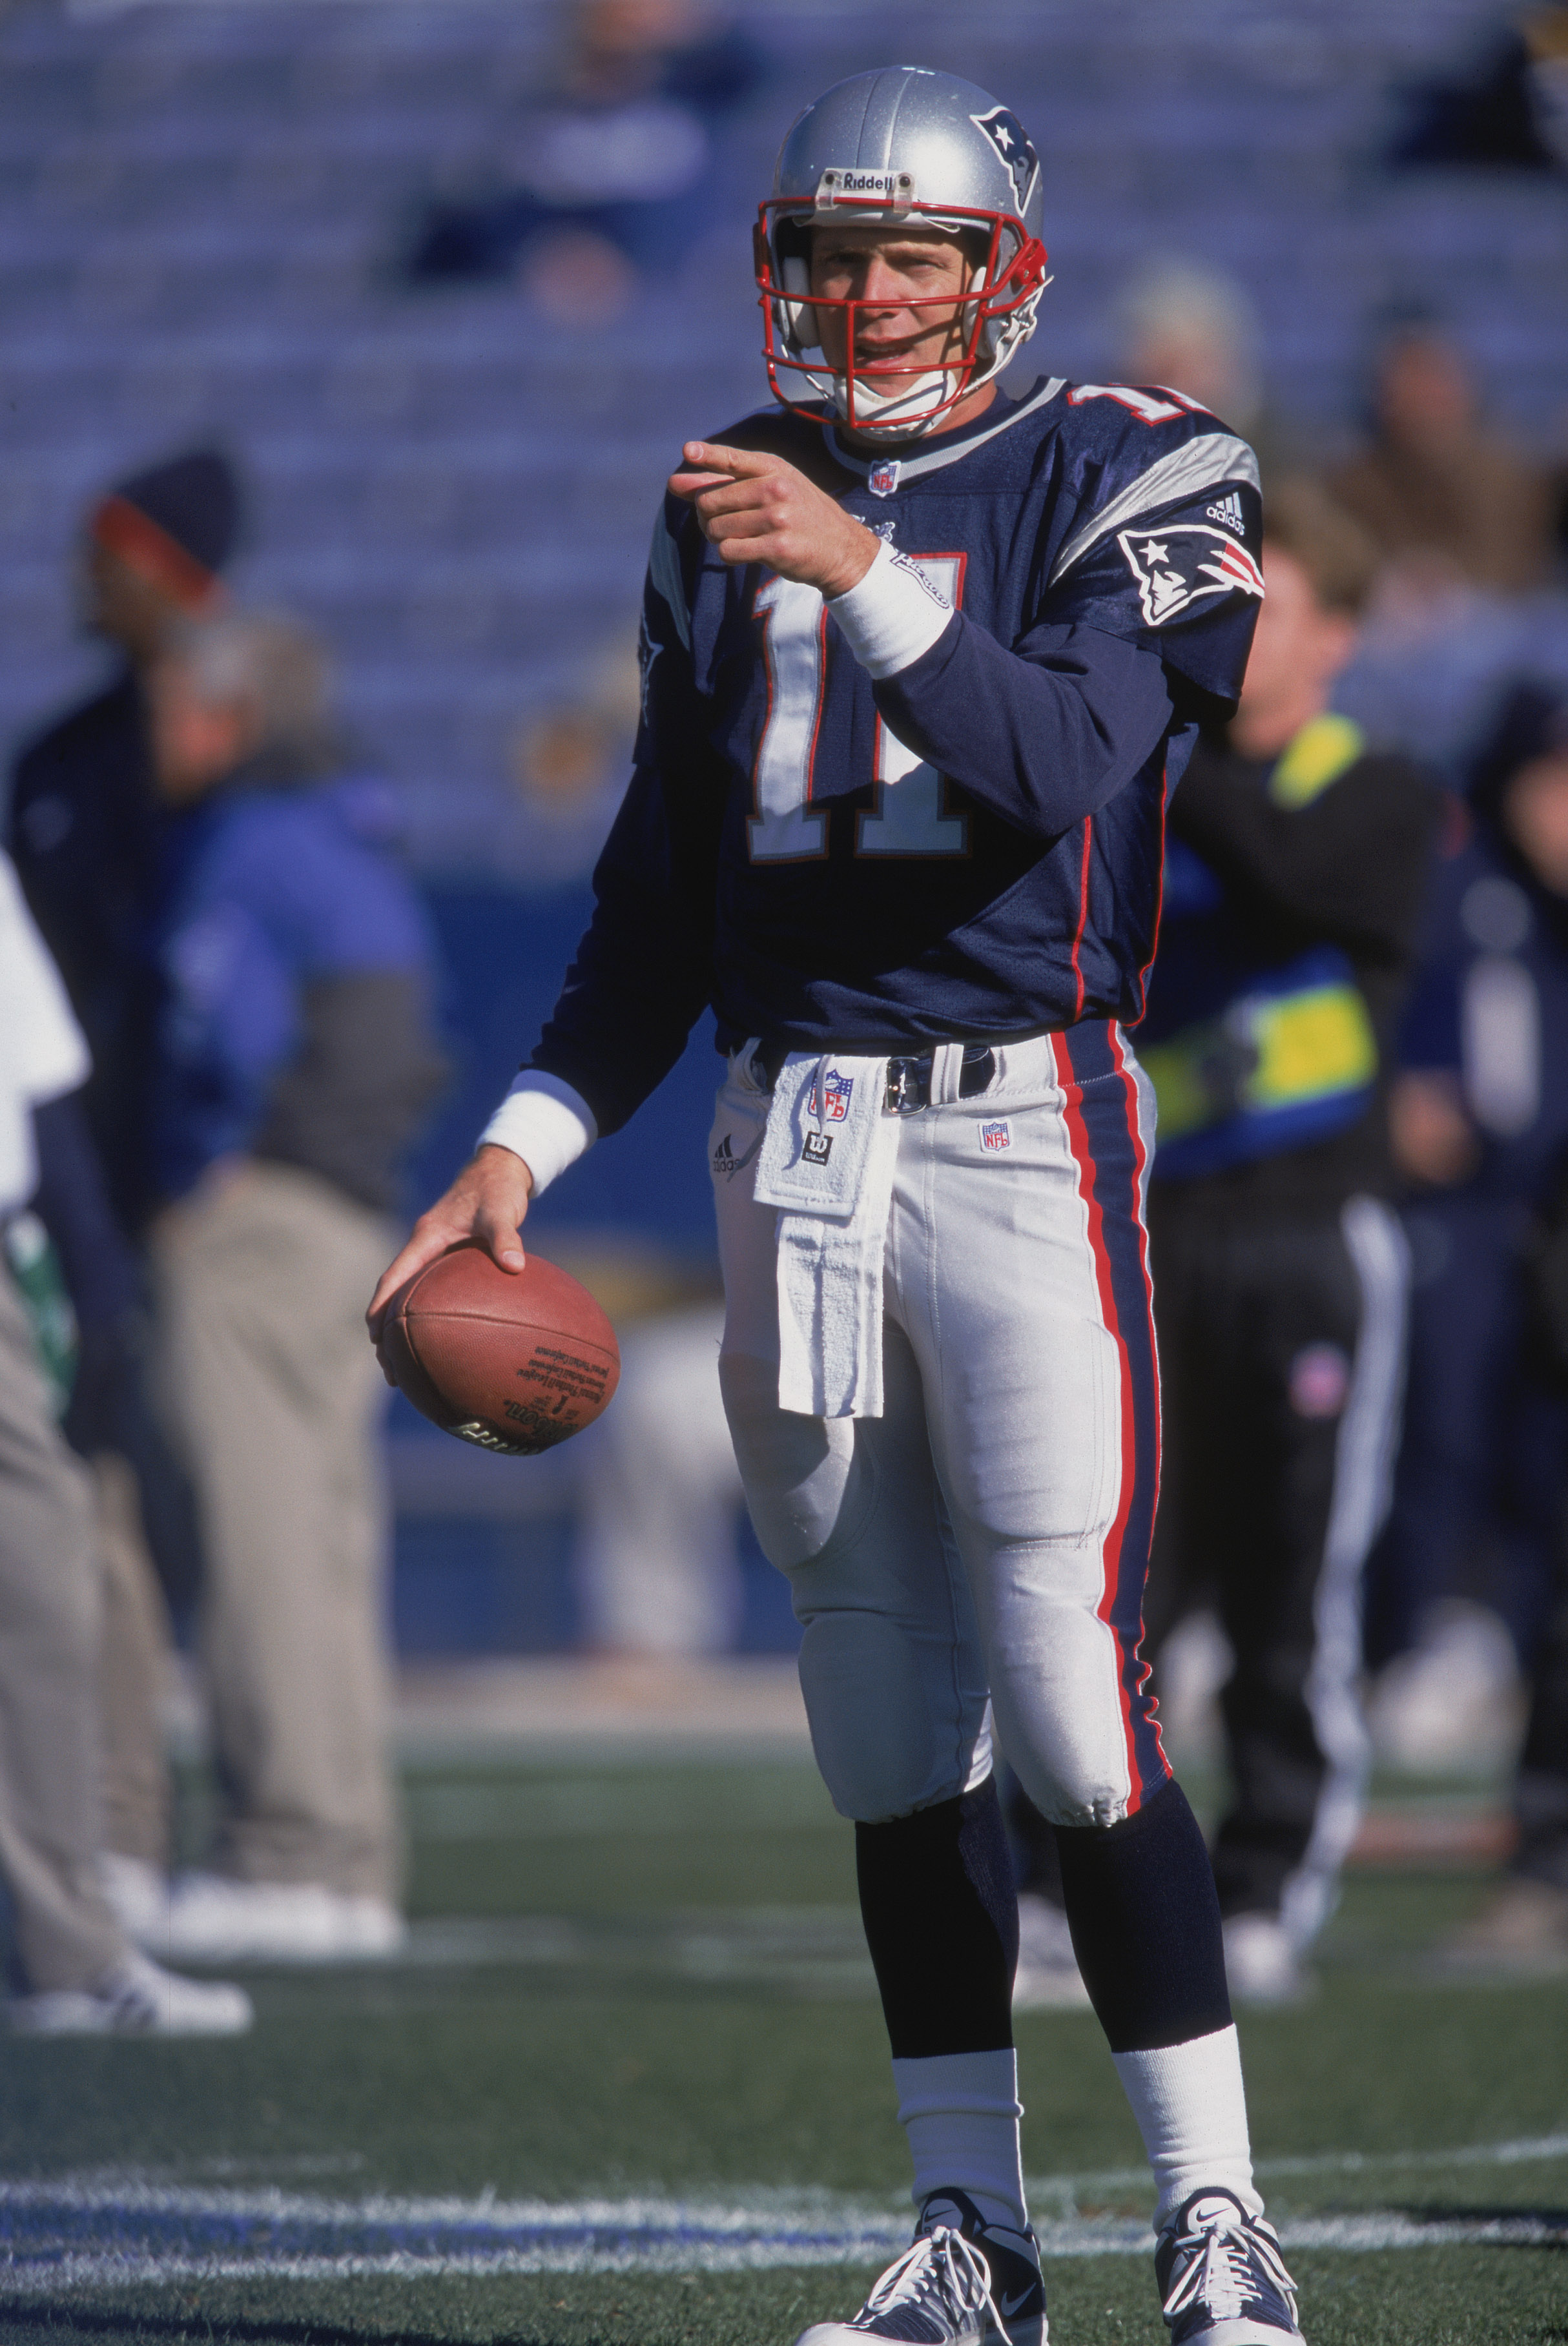 11 Nov 2001:  Quarterback Drew Bledsoe #11 of the New England Patriots warming up before the game against the Buffalo Bills at the Foxboro Stadium in Foxboro, Massachusetts. The Patriots defeated the Bills 21-11.Mandatory Credit: Jamie Squire /Allsport